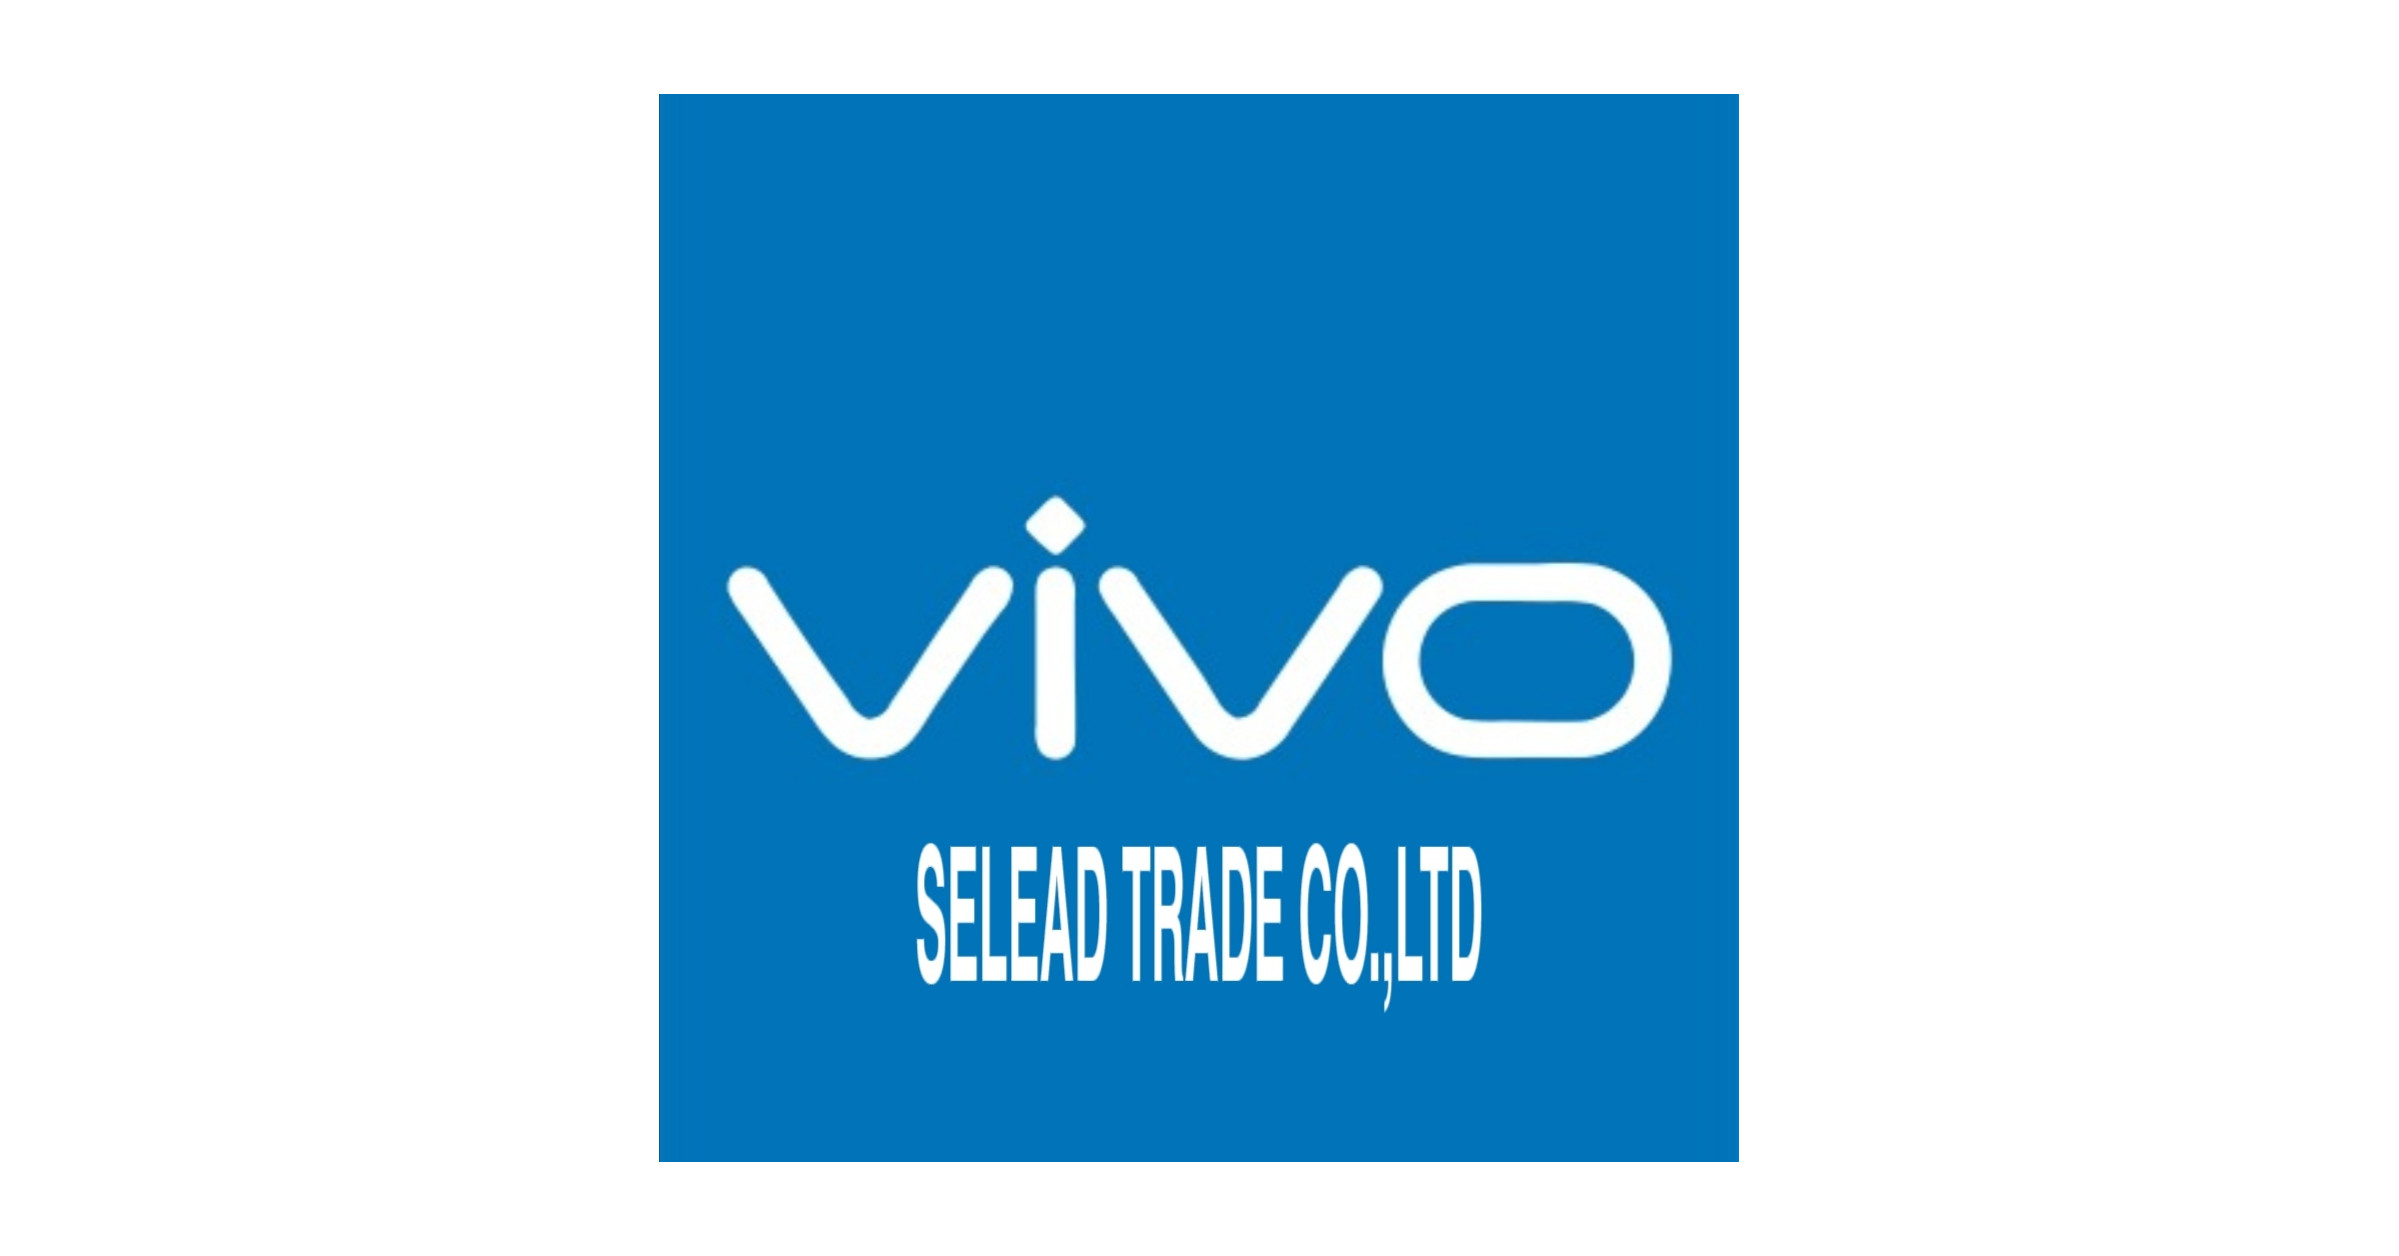 صورة Job: Accountant Manager at vivo in Cairo, Egypt